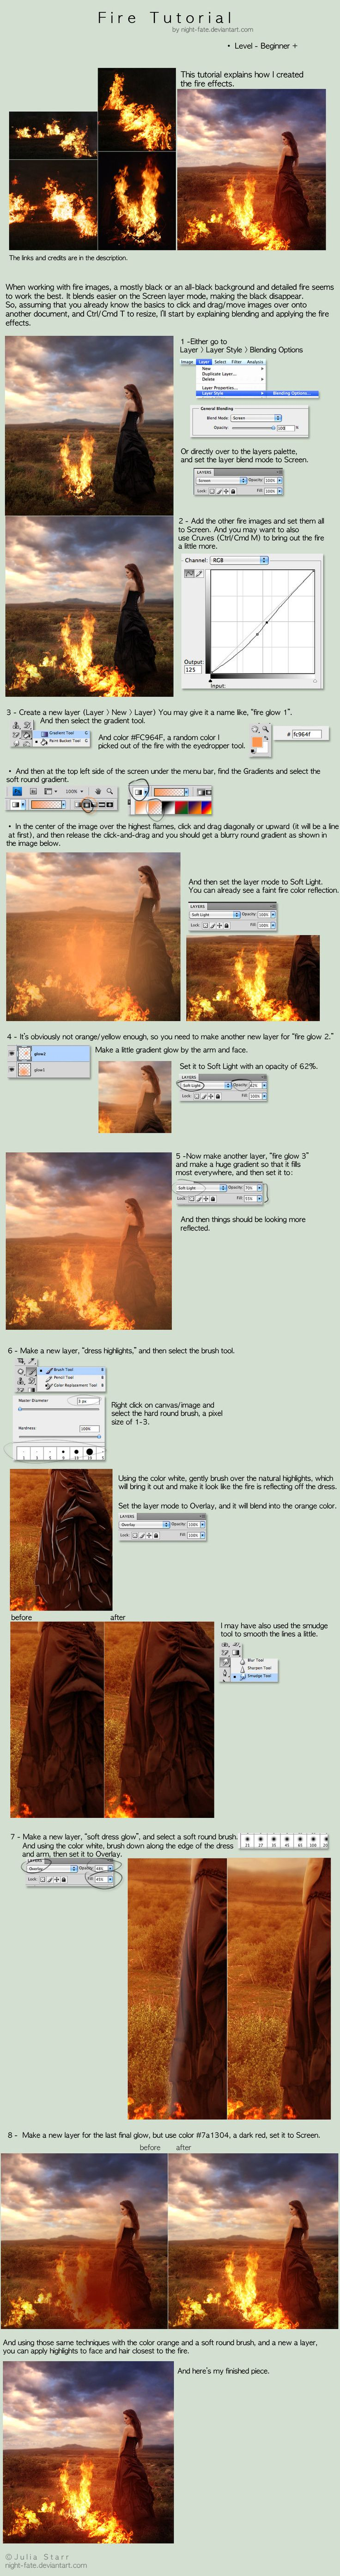 a great step by step tutorial on  how to create dimension and believability in an image like fire for instance.  Very well written by night-fate on deviant art